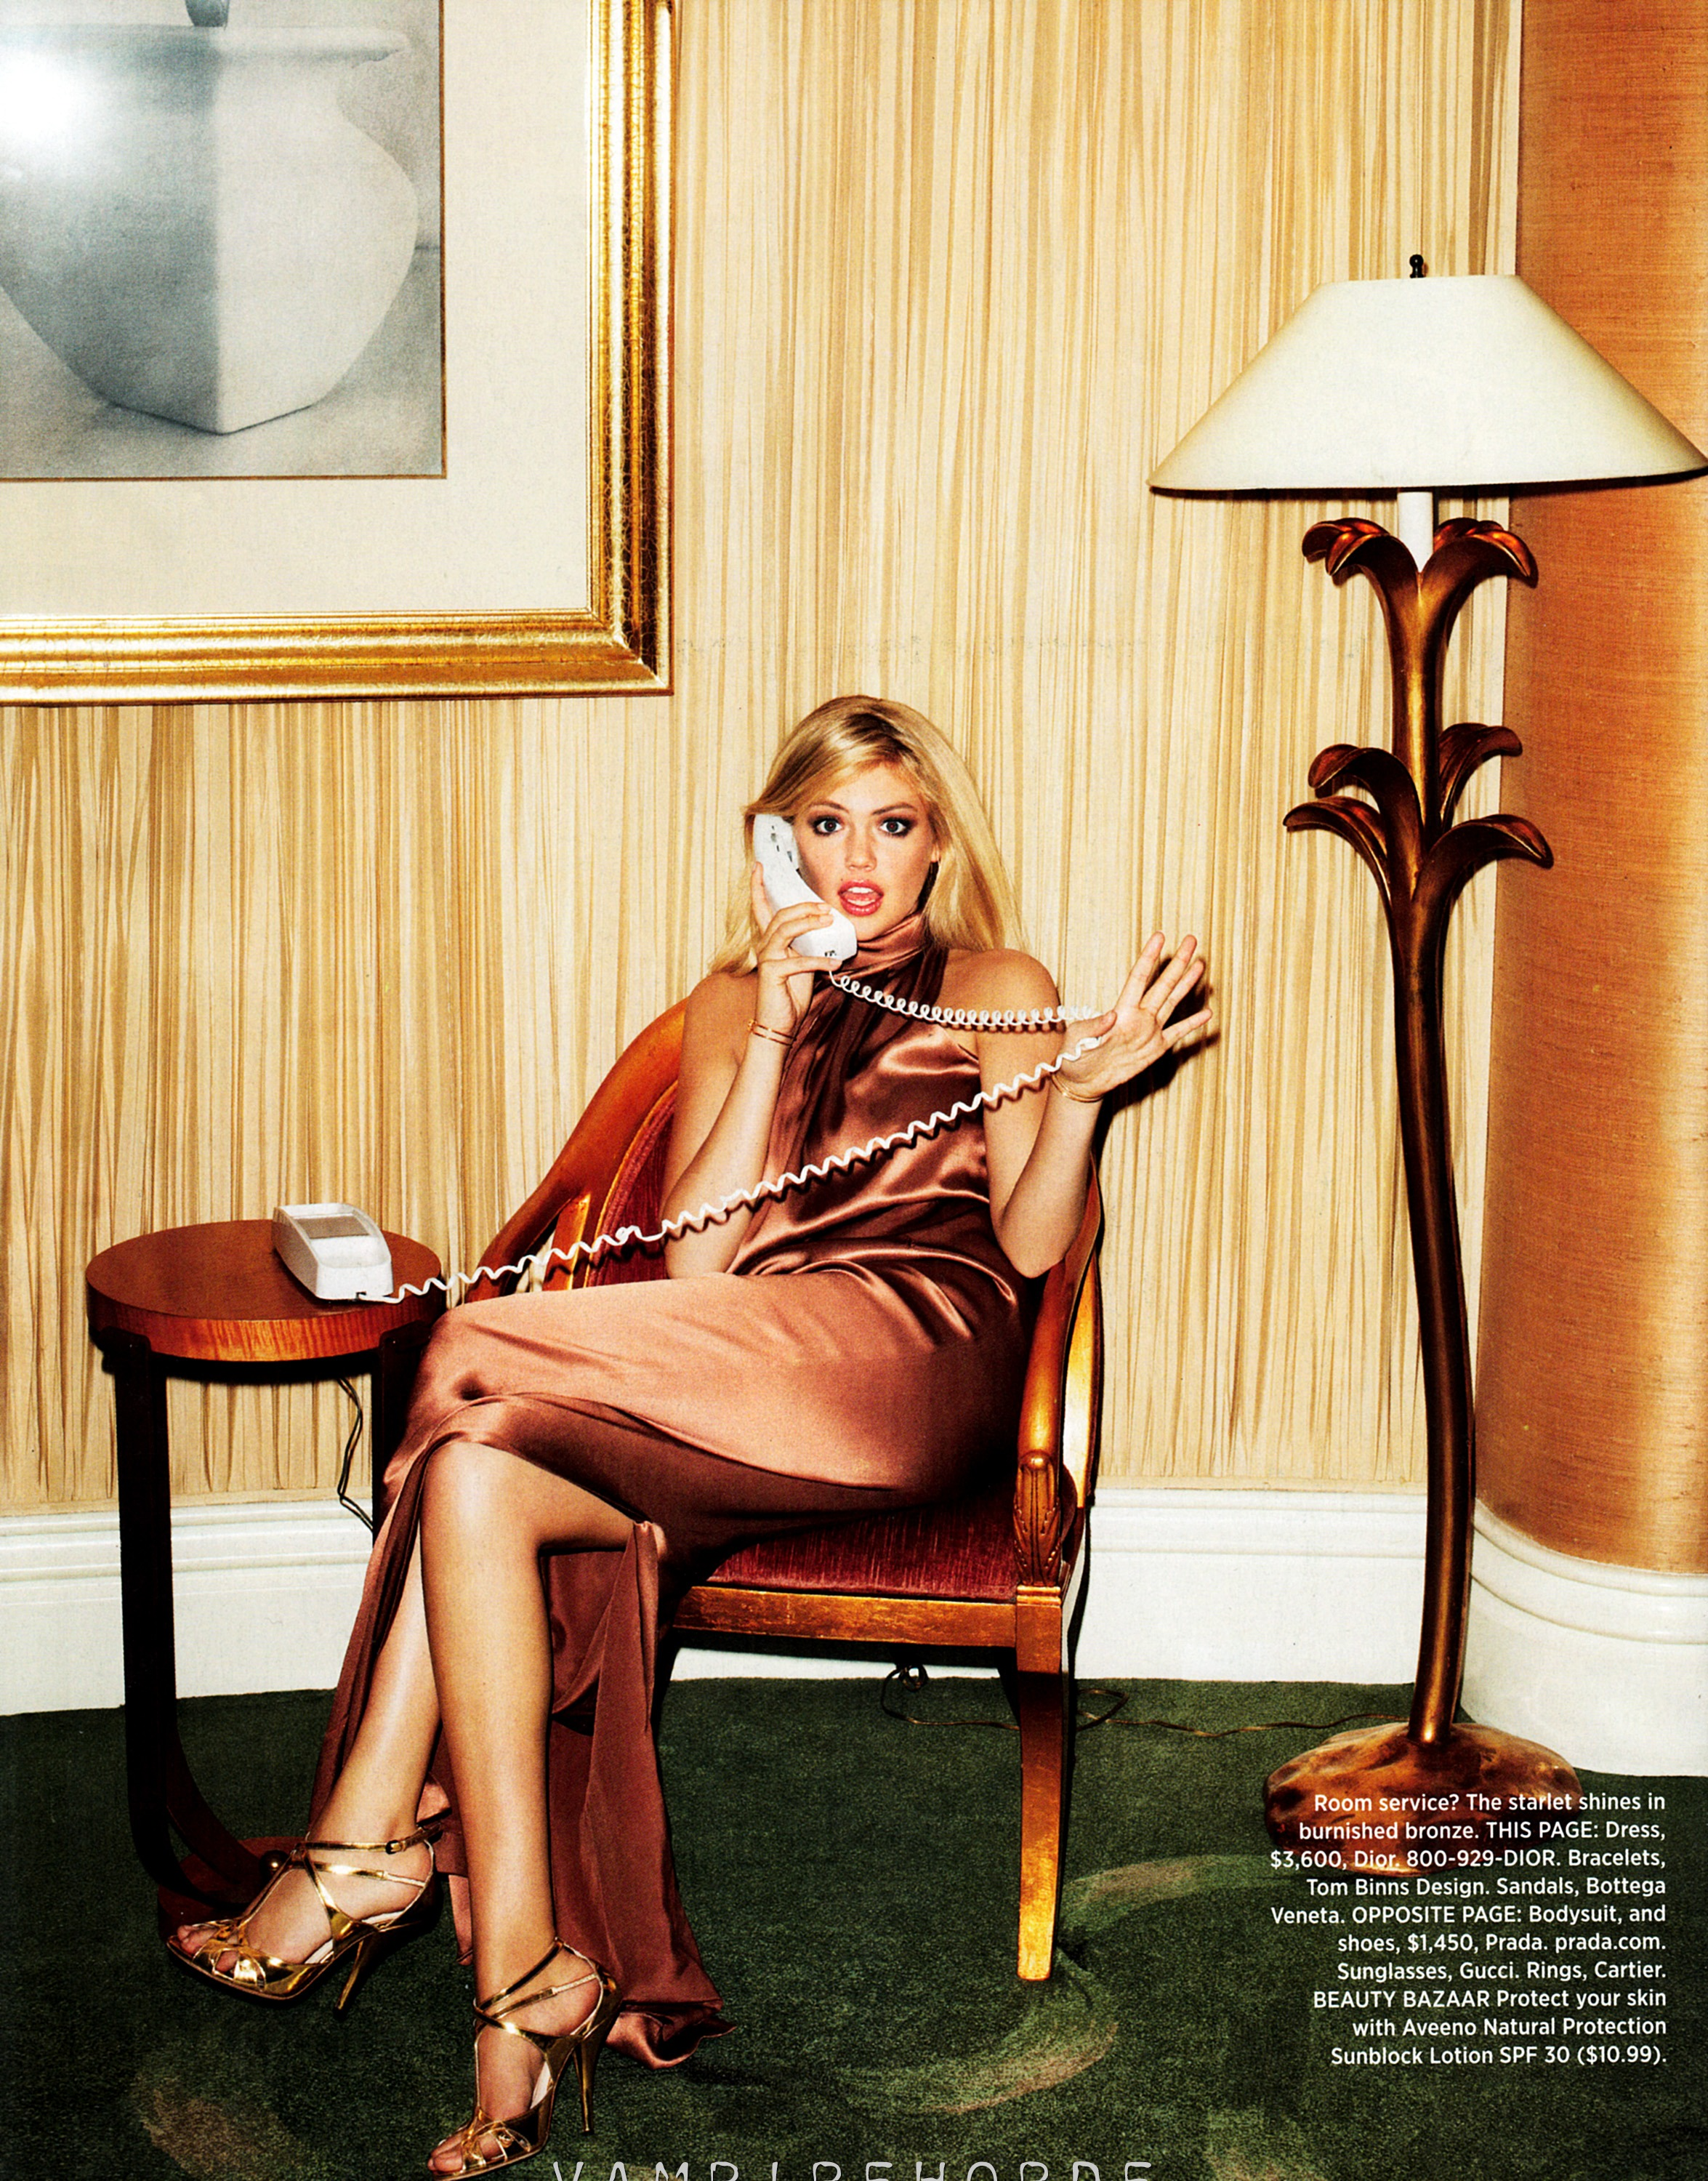 fashion_scans_remastered-kate_upton-harpers_bazaar_usa-may_2012-scanned_by_vampirehorde-hq-3.jpg